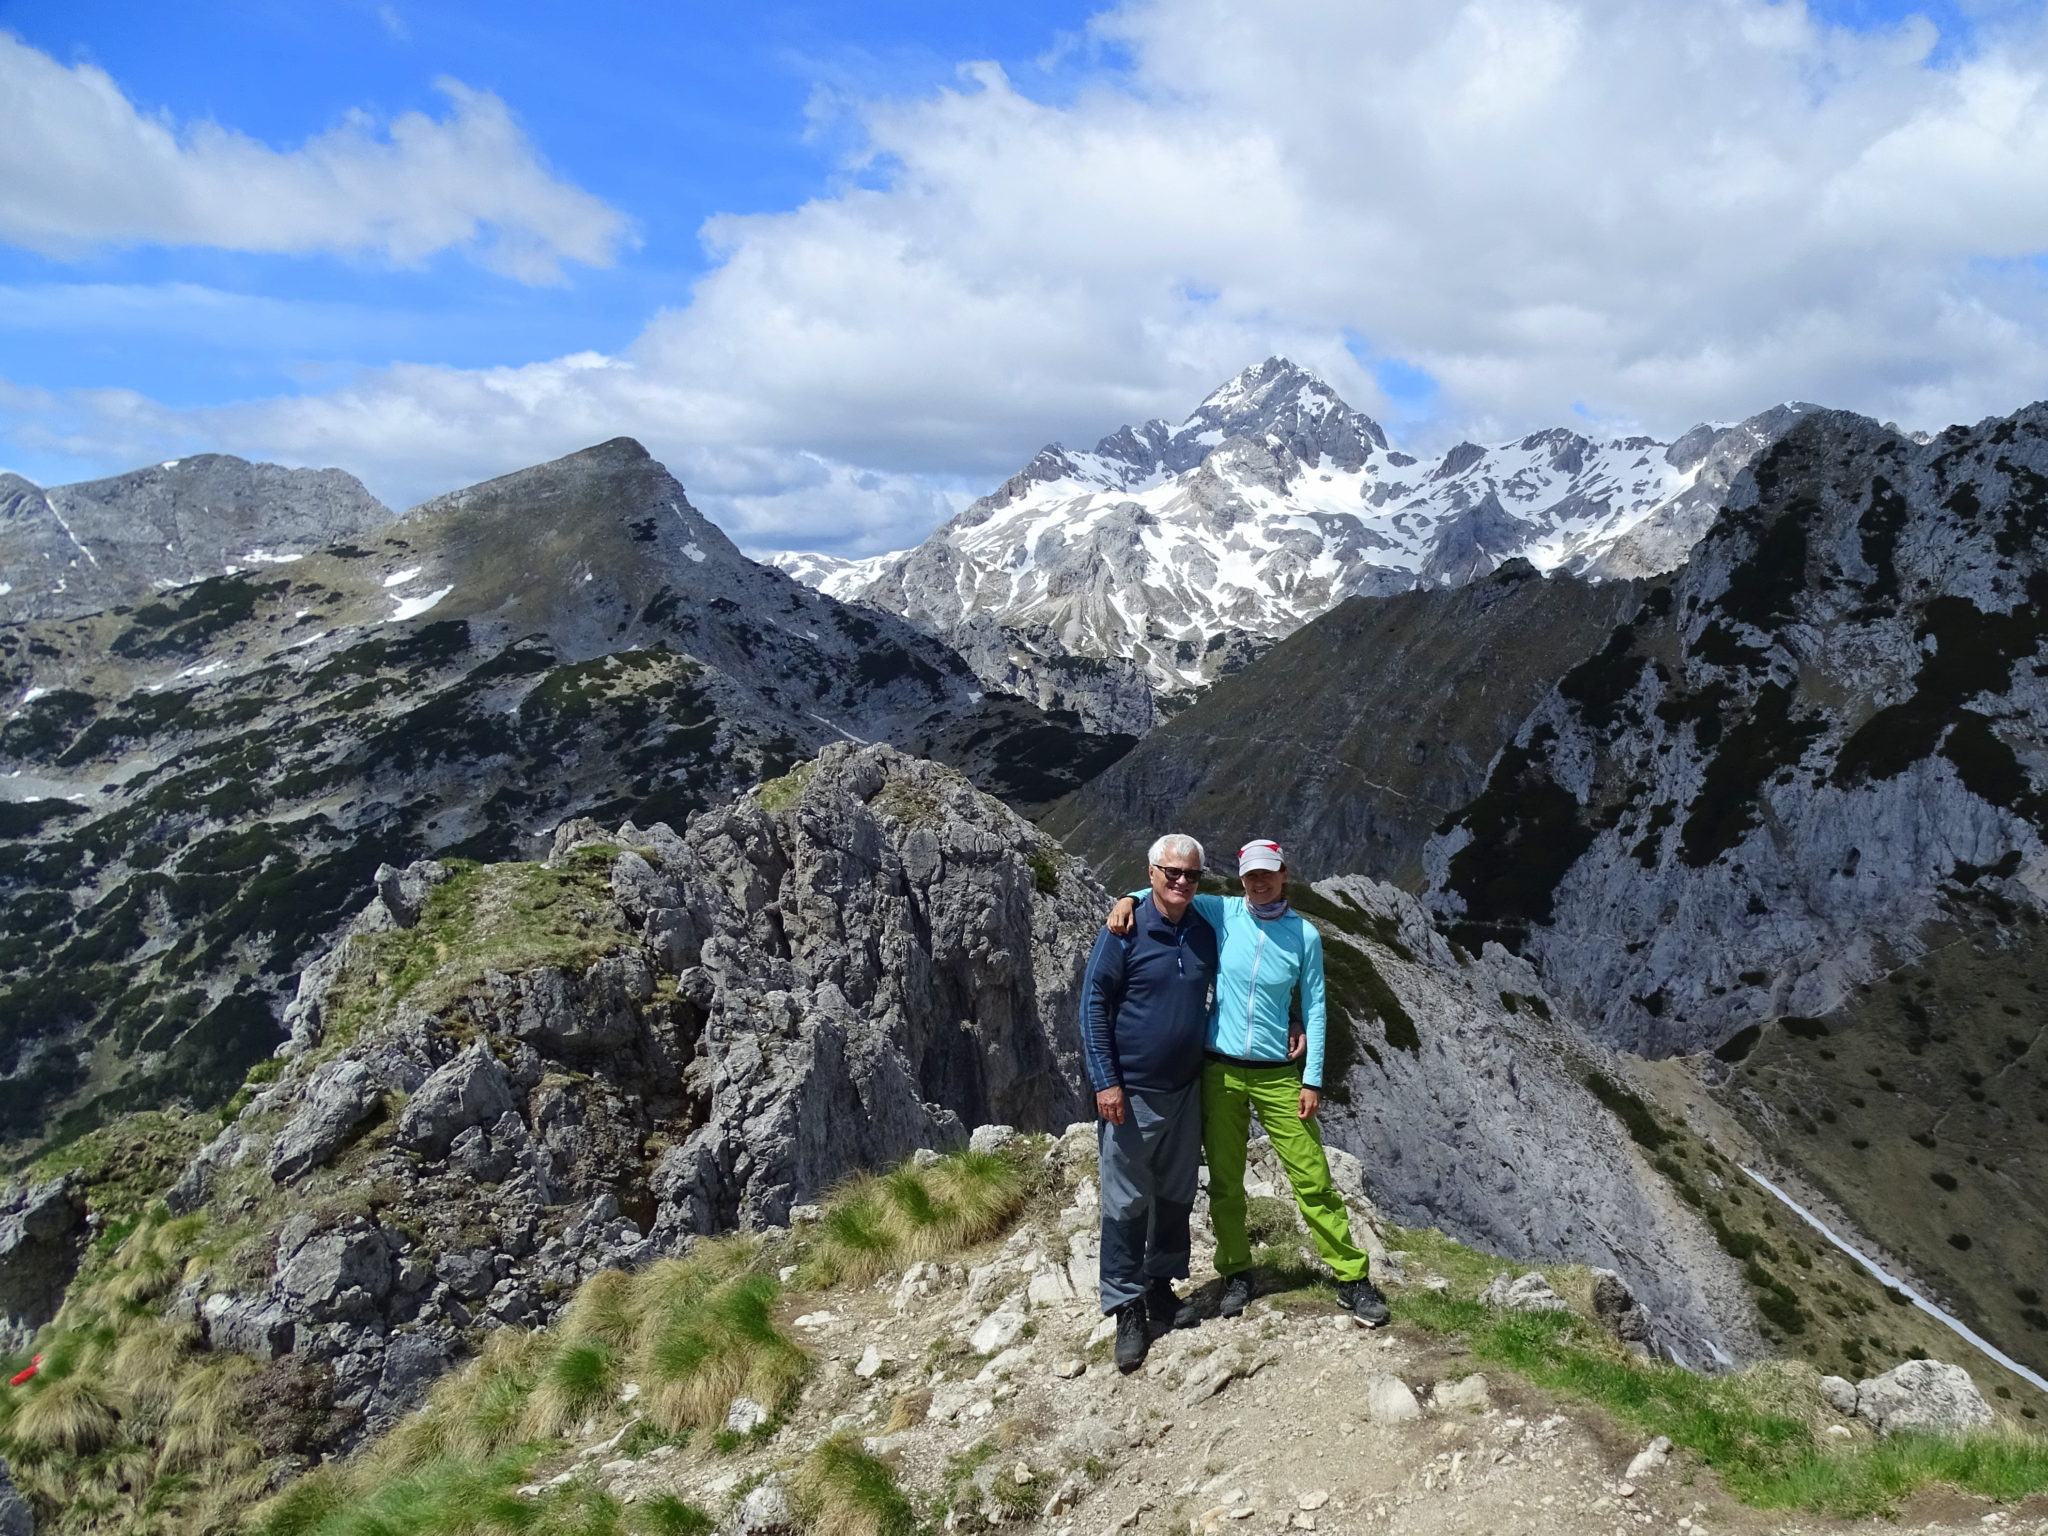 Hiking to Mt. Viševnik with my dad